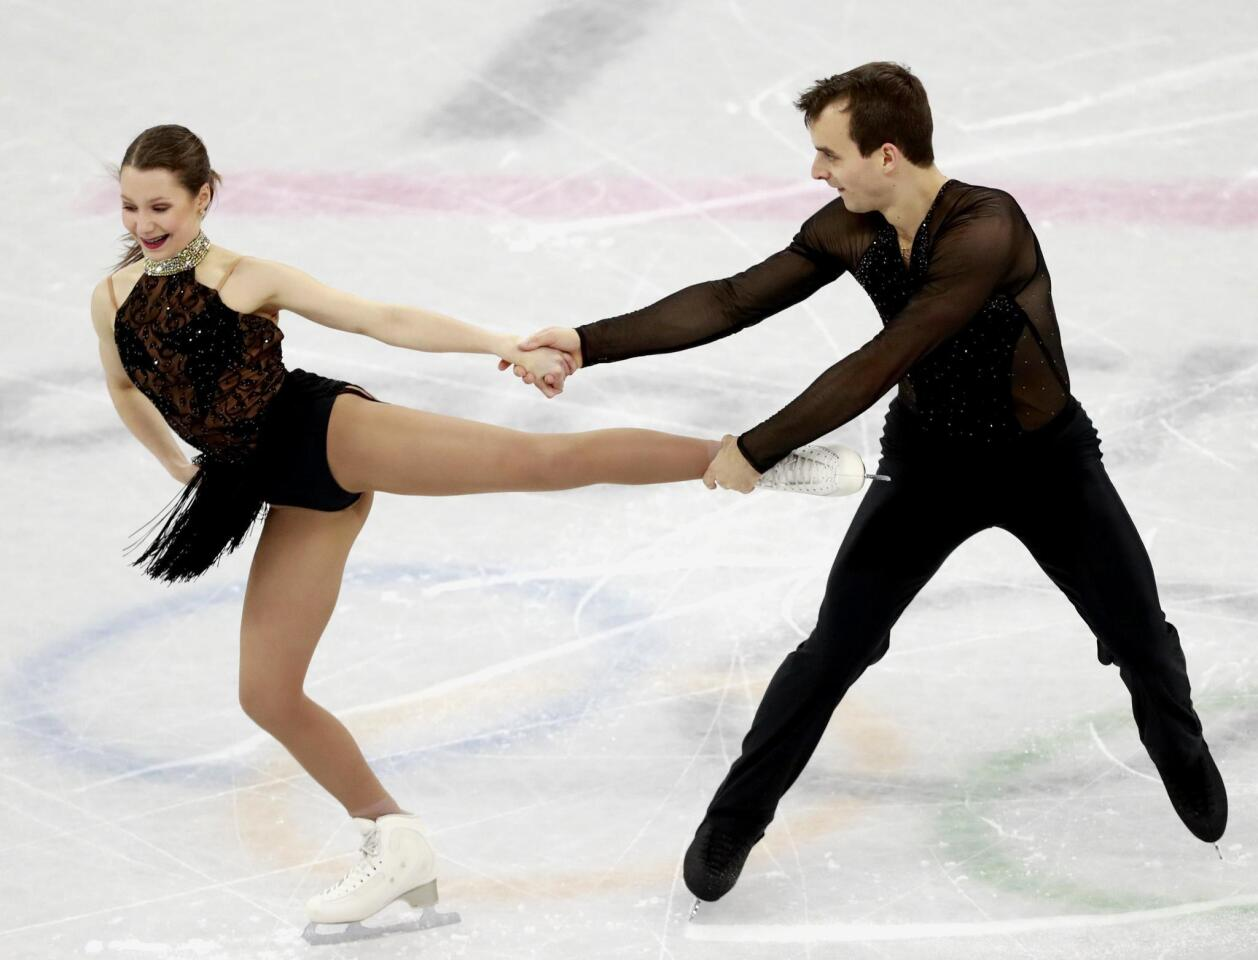 Gangneung (Korea, Republic Of), 14/02/2018.- Annika Hocke and Ruben Blommaert of Germany perform during the Pair Short Program of the Figure Skating competition at the Gangneung Ice Arena during the PyeongChang 2018 Olympic Games, South Korea, 14 February 2018. (Corea del Sur, Alemania) EFE/EPA/HOW HWEE YOUNG ** Usable by HOY and SD Only **